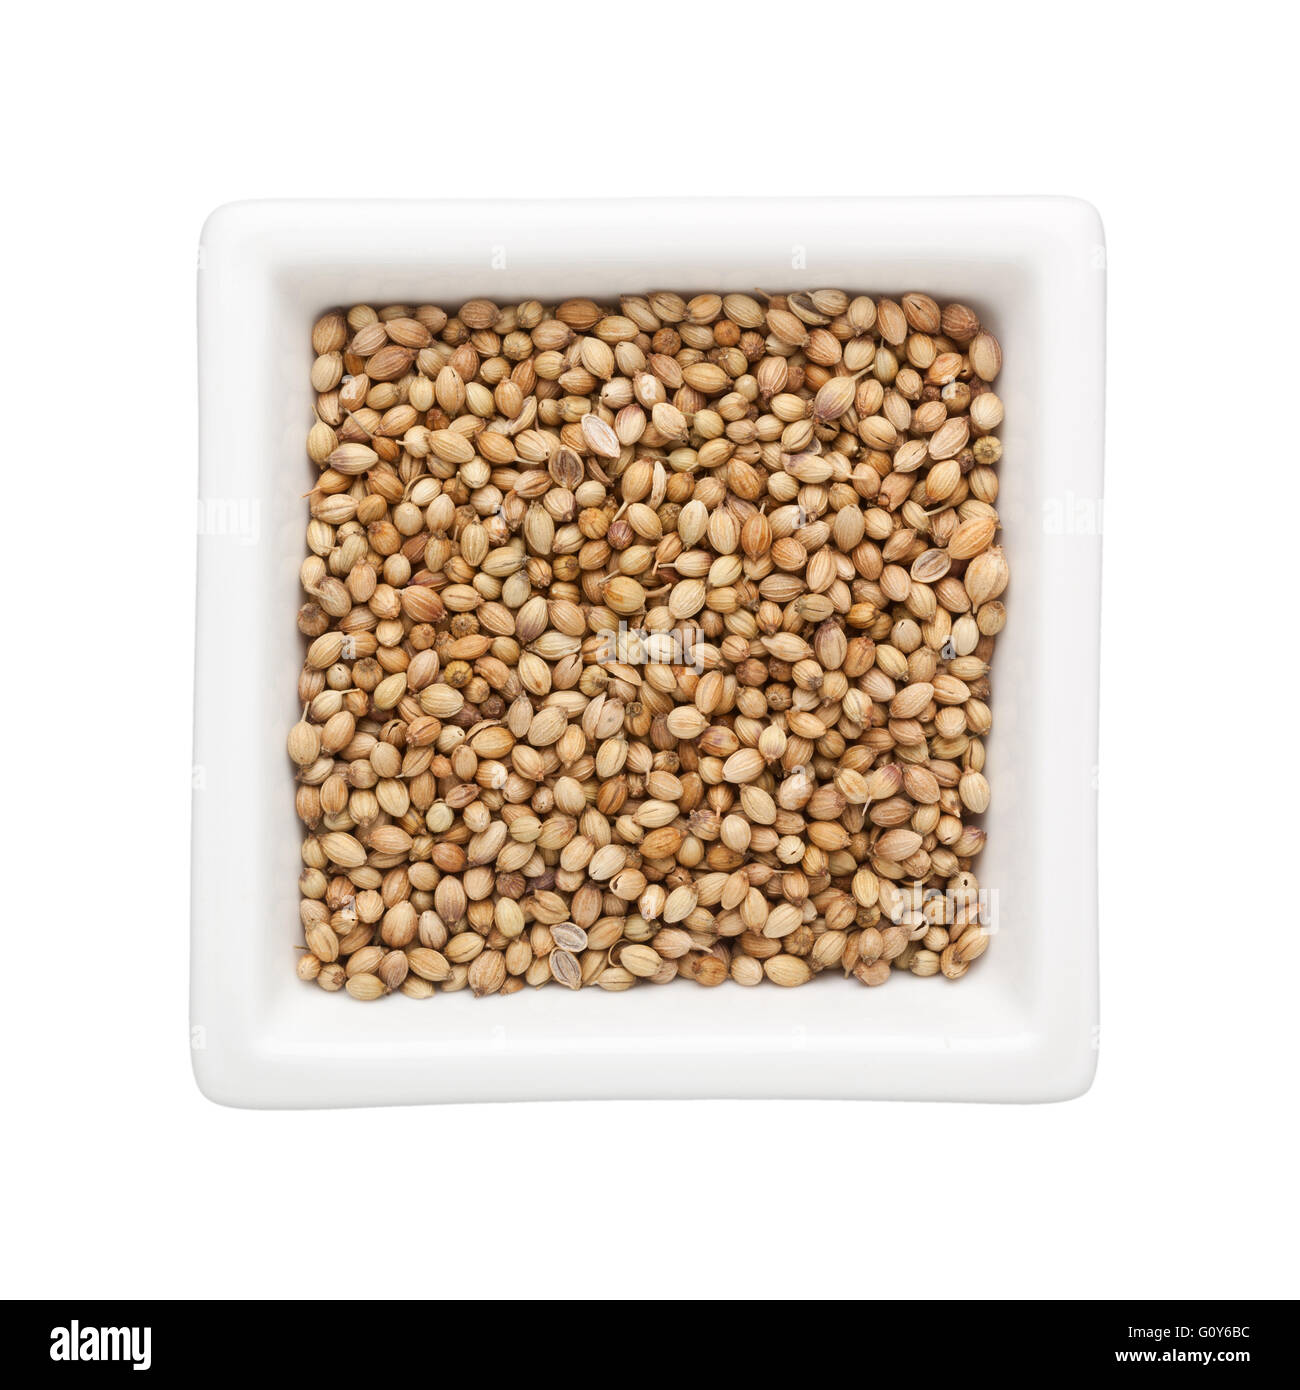 Coriander seeds in a square bowl isolated on white background - Stock Image